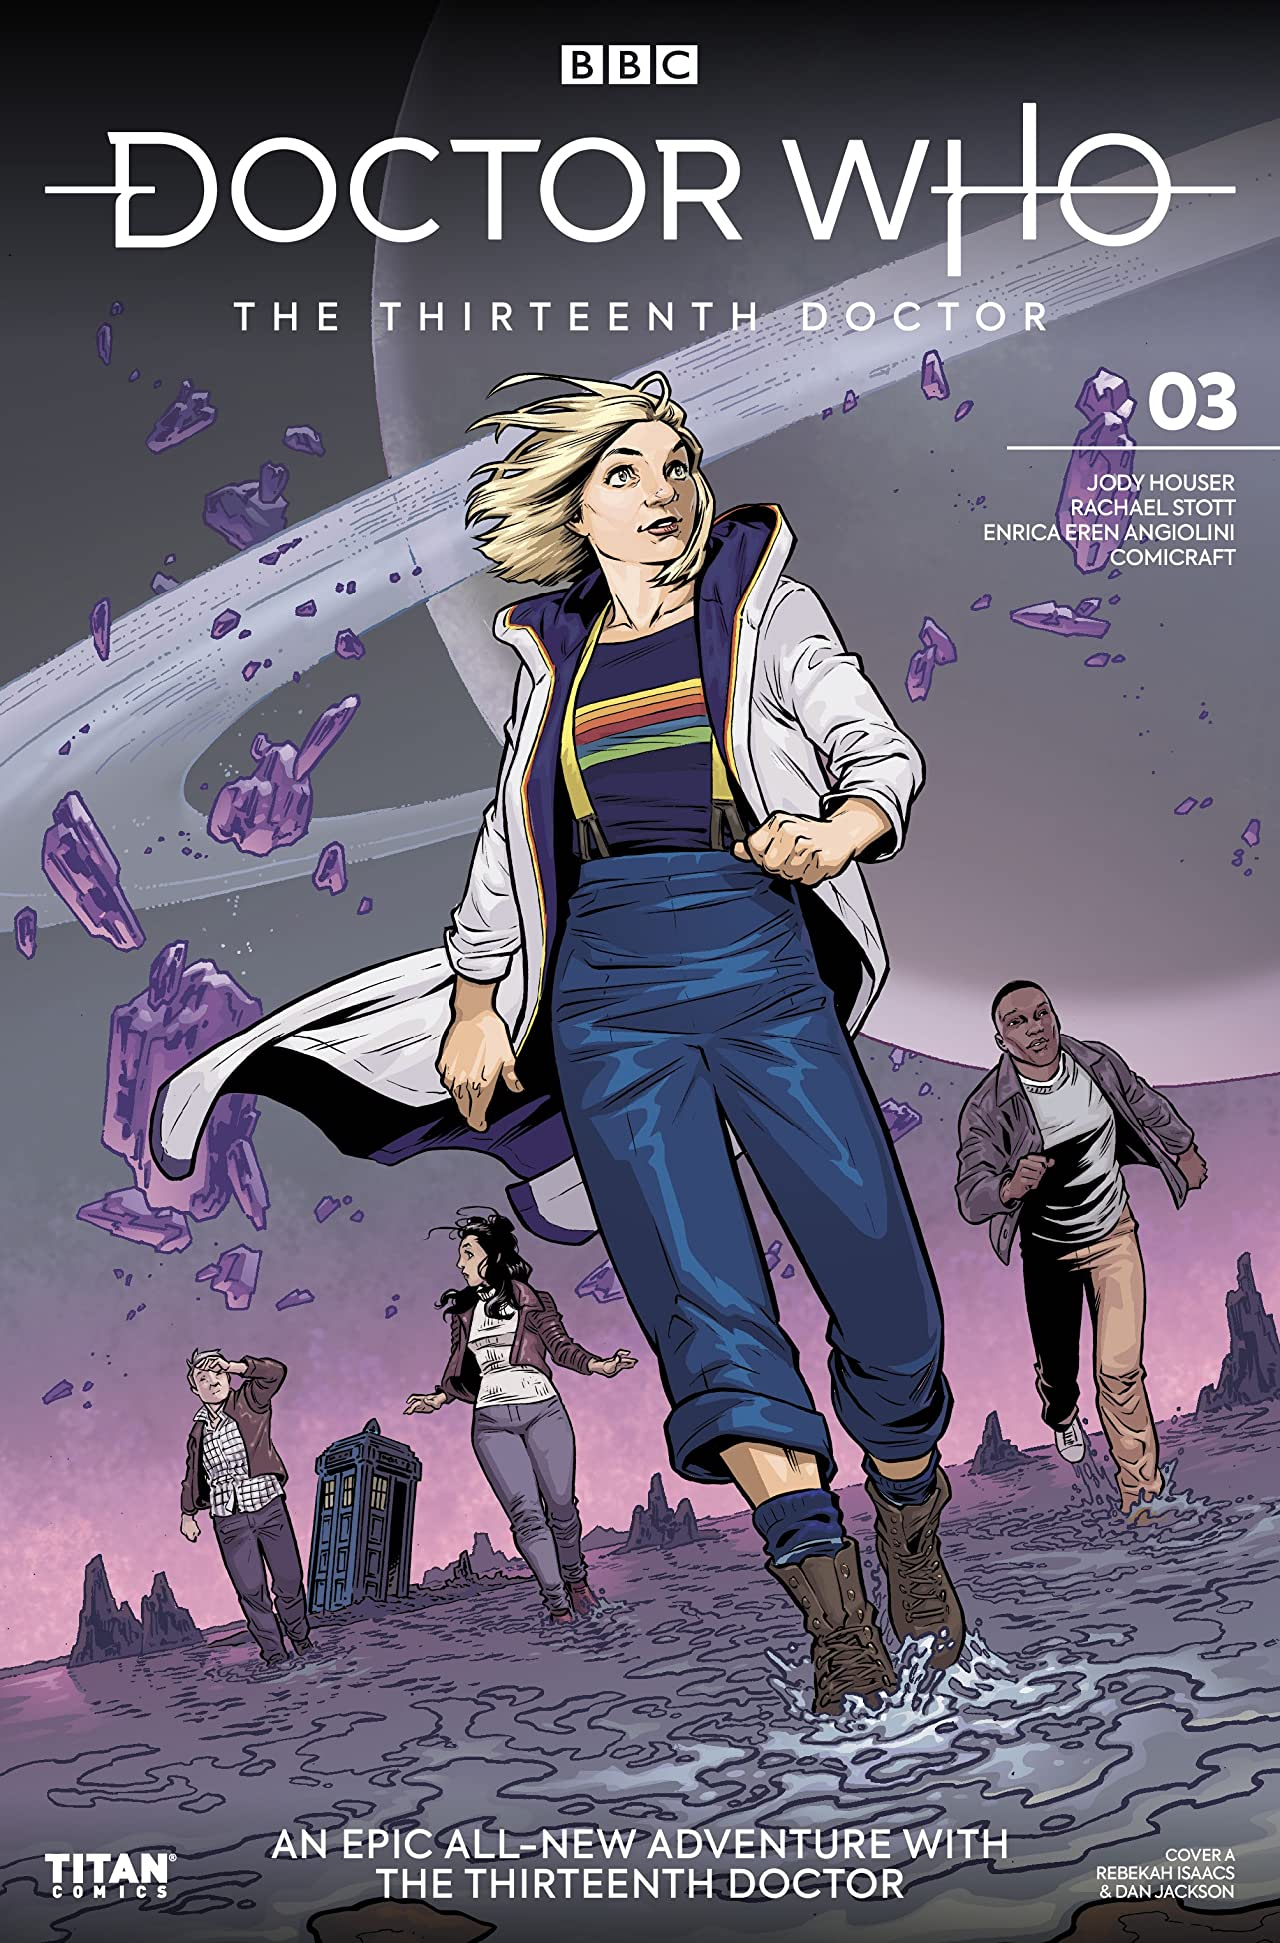 Doctor Who: The Thirteenth Doctor No.3